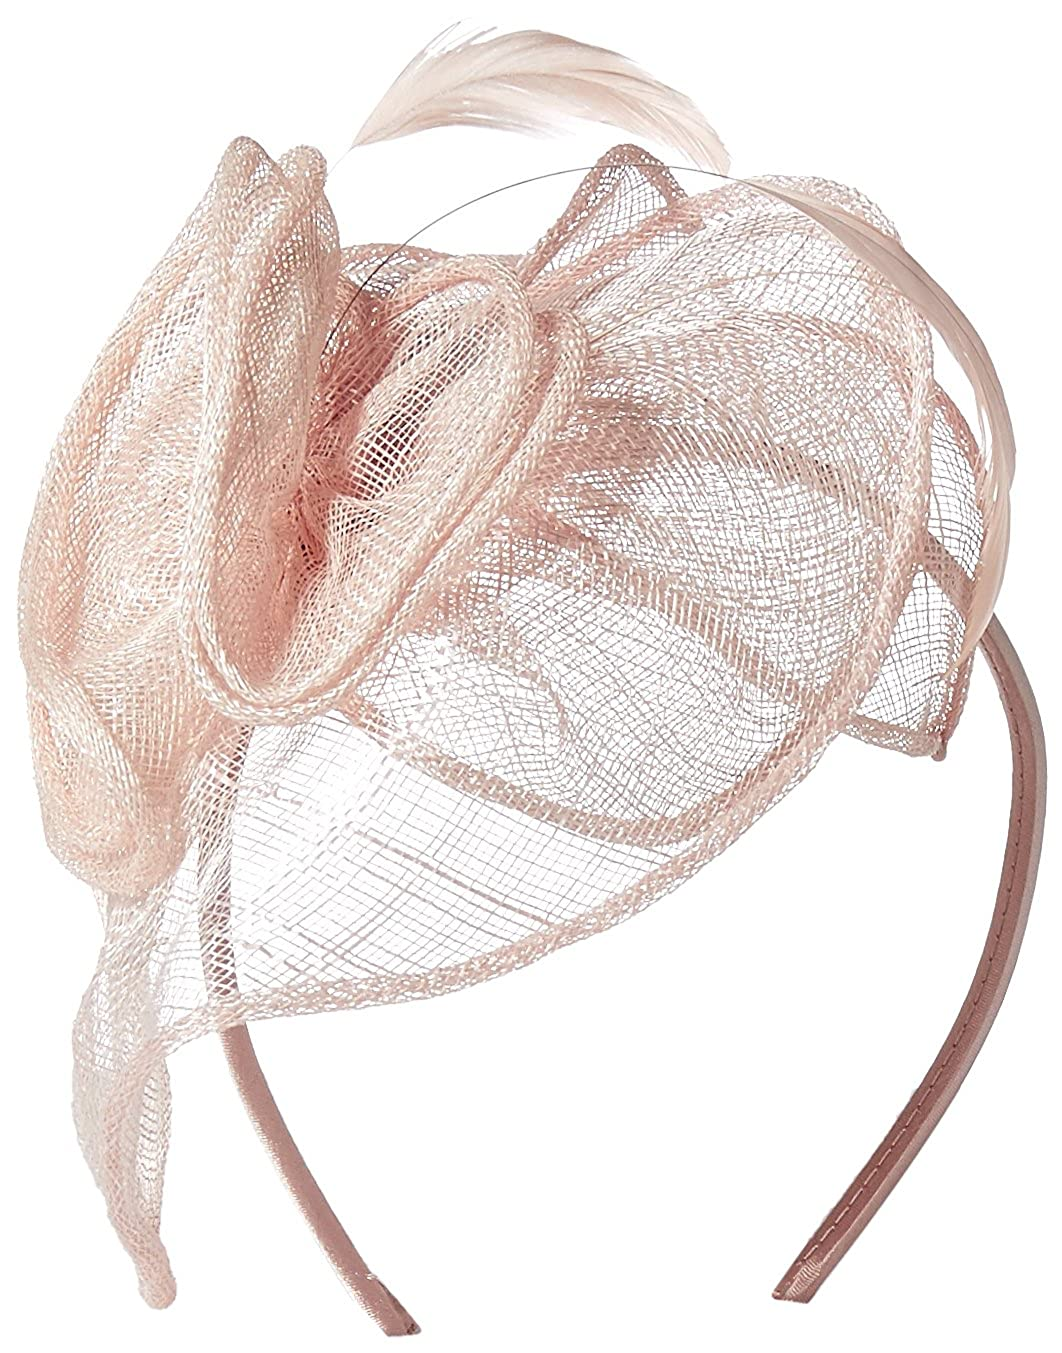 San Diego Hat Company Women's Fasinatior Hat with Rosette and Feathers Blush One Size DRS1006